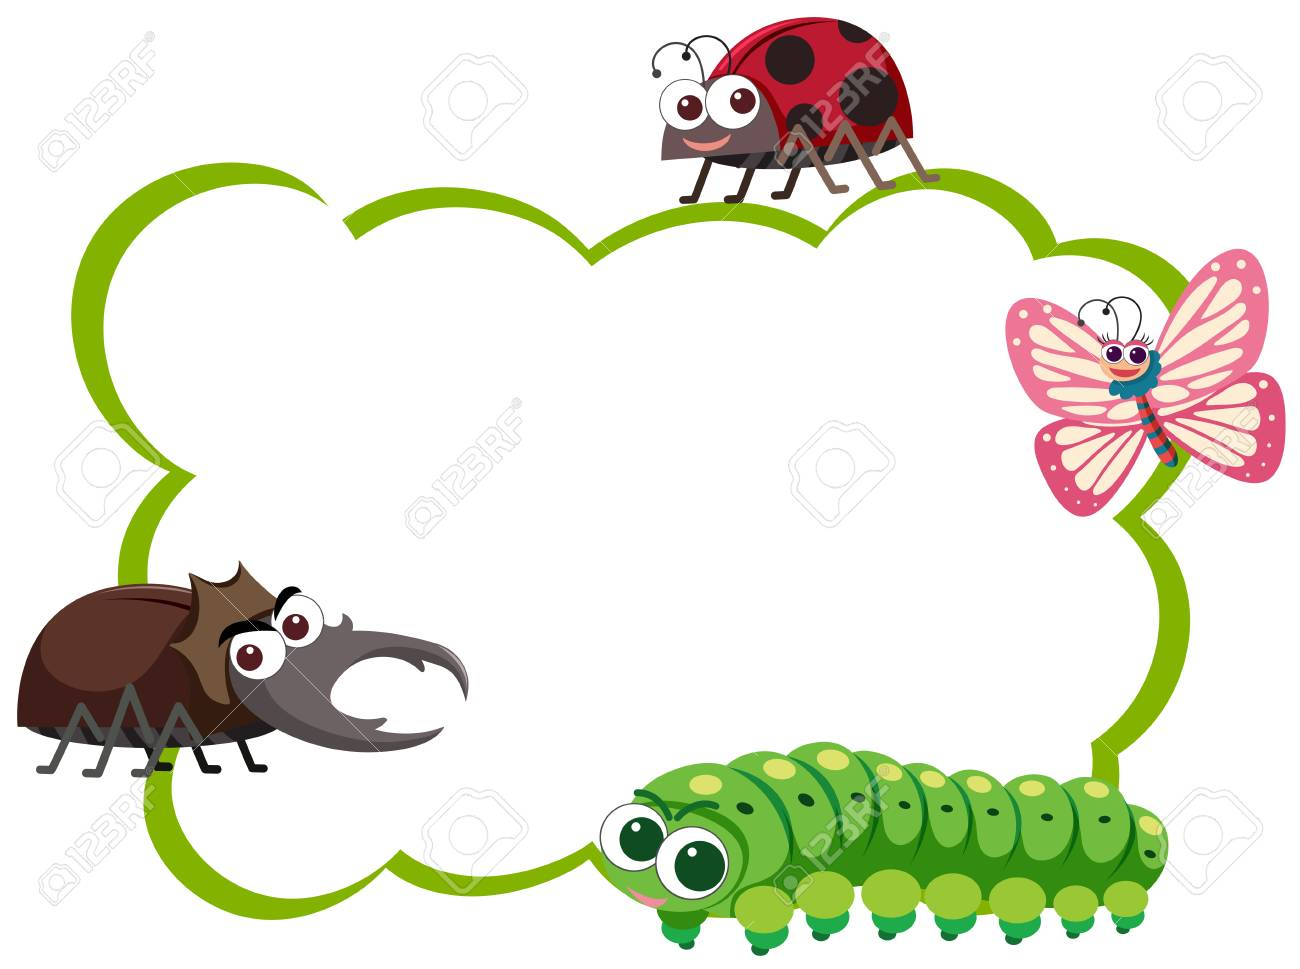 Border template with four types of insects illustration.